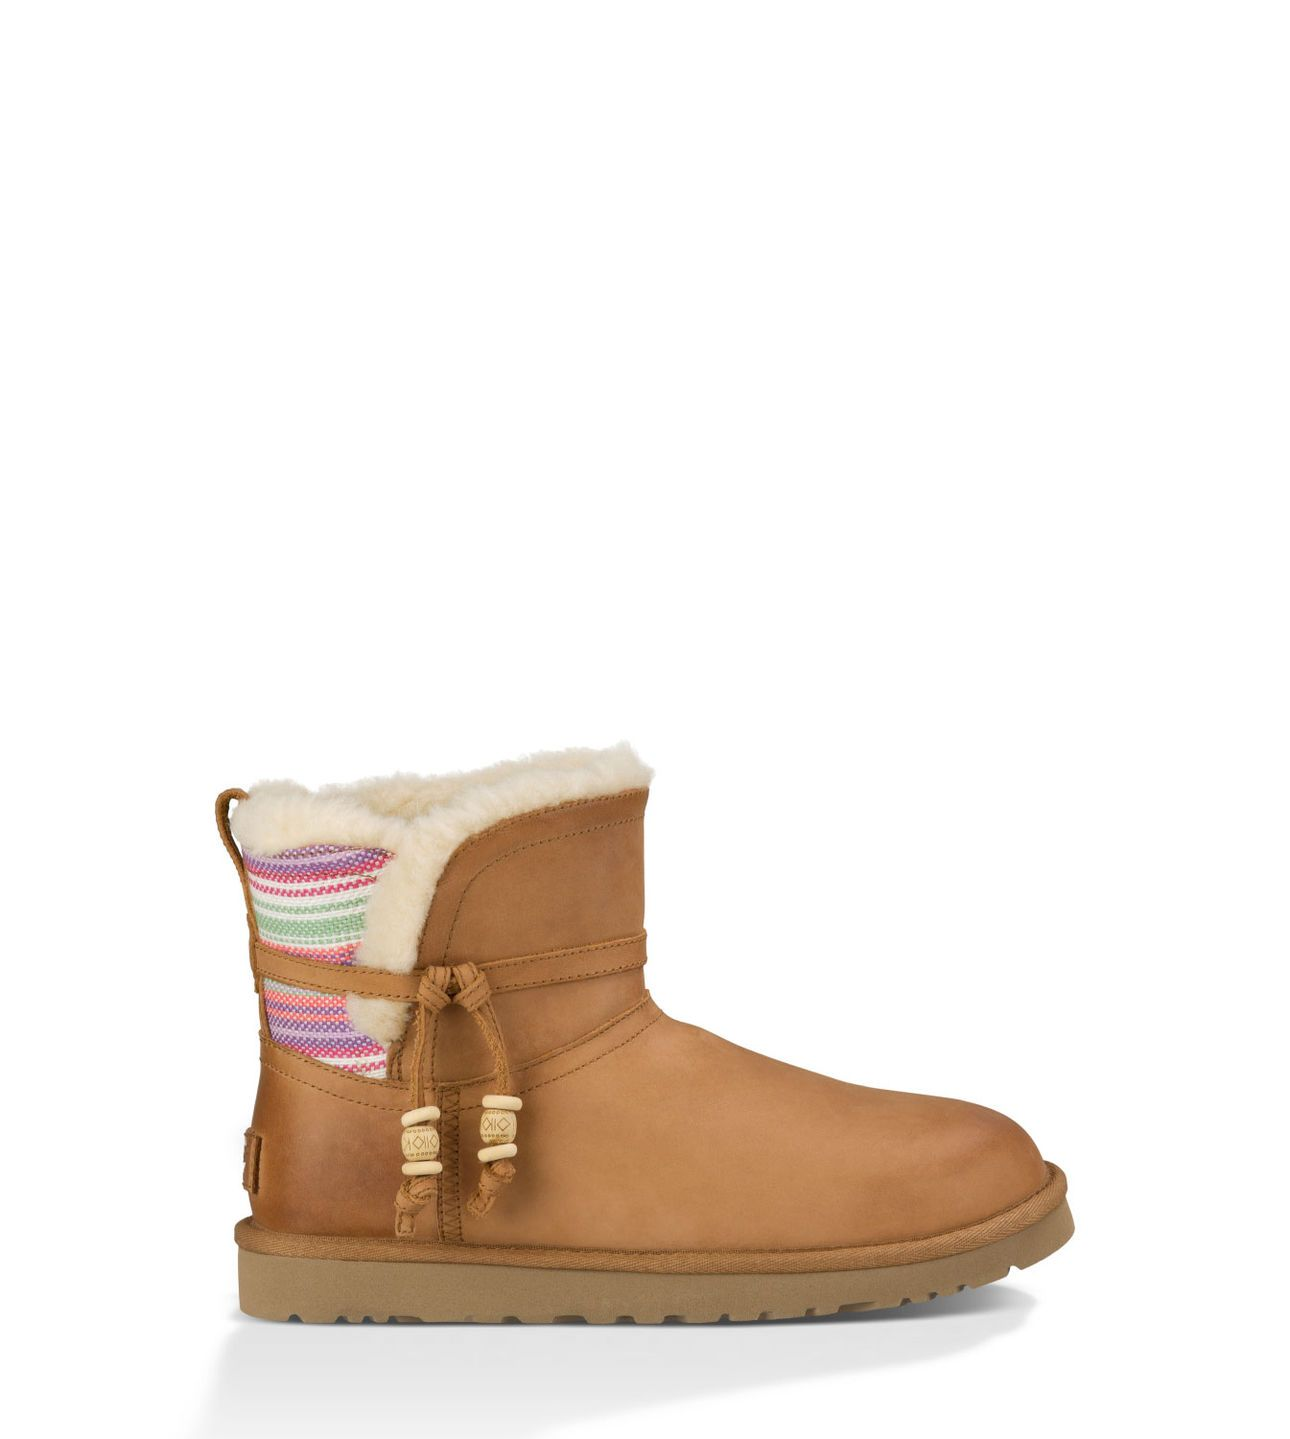 690ed9f439c Shop our collection of Women's Boots including the Auburn Serape ...